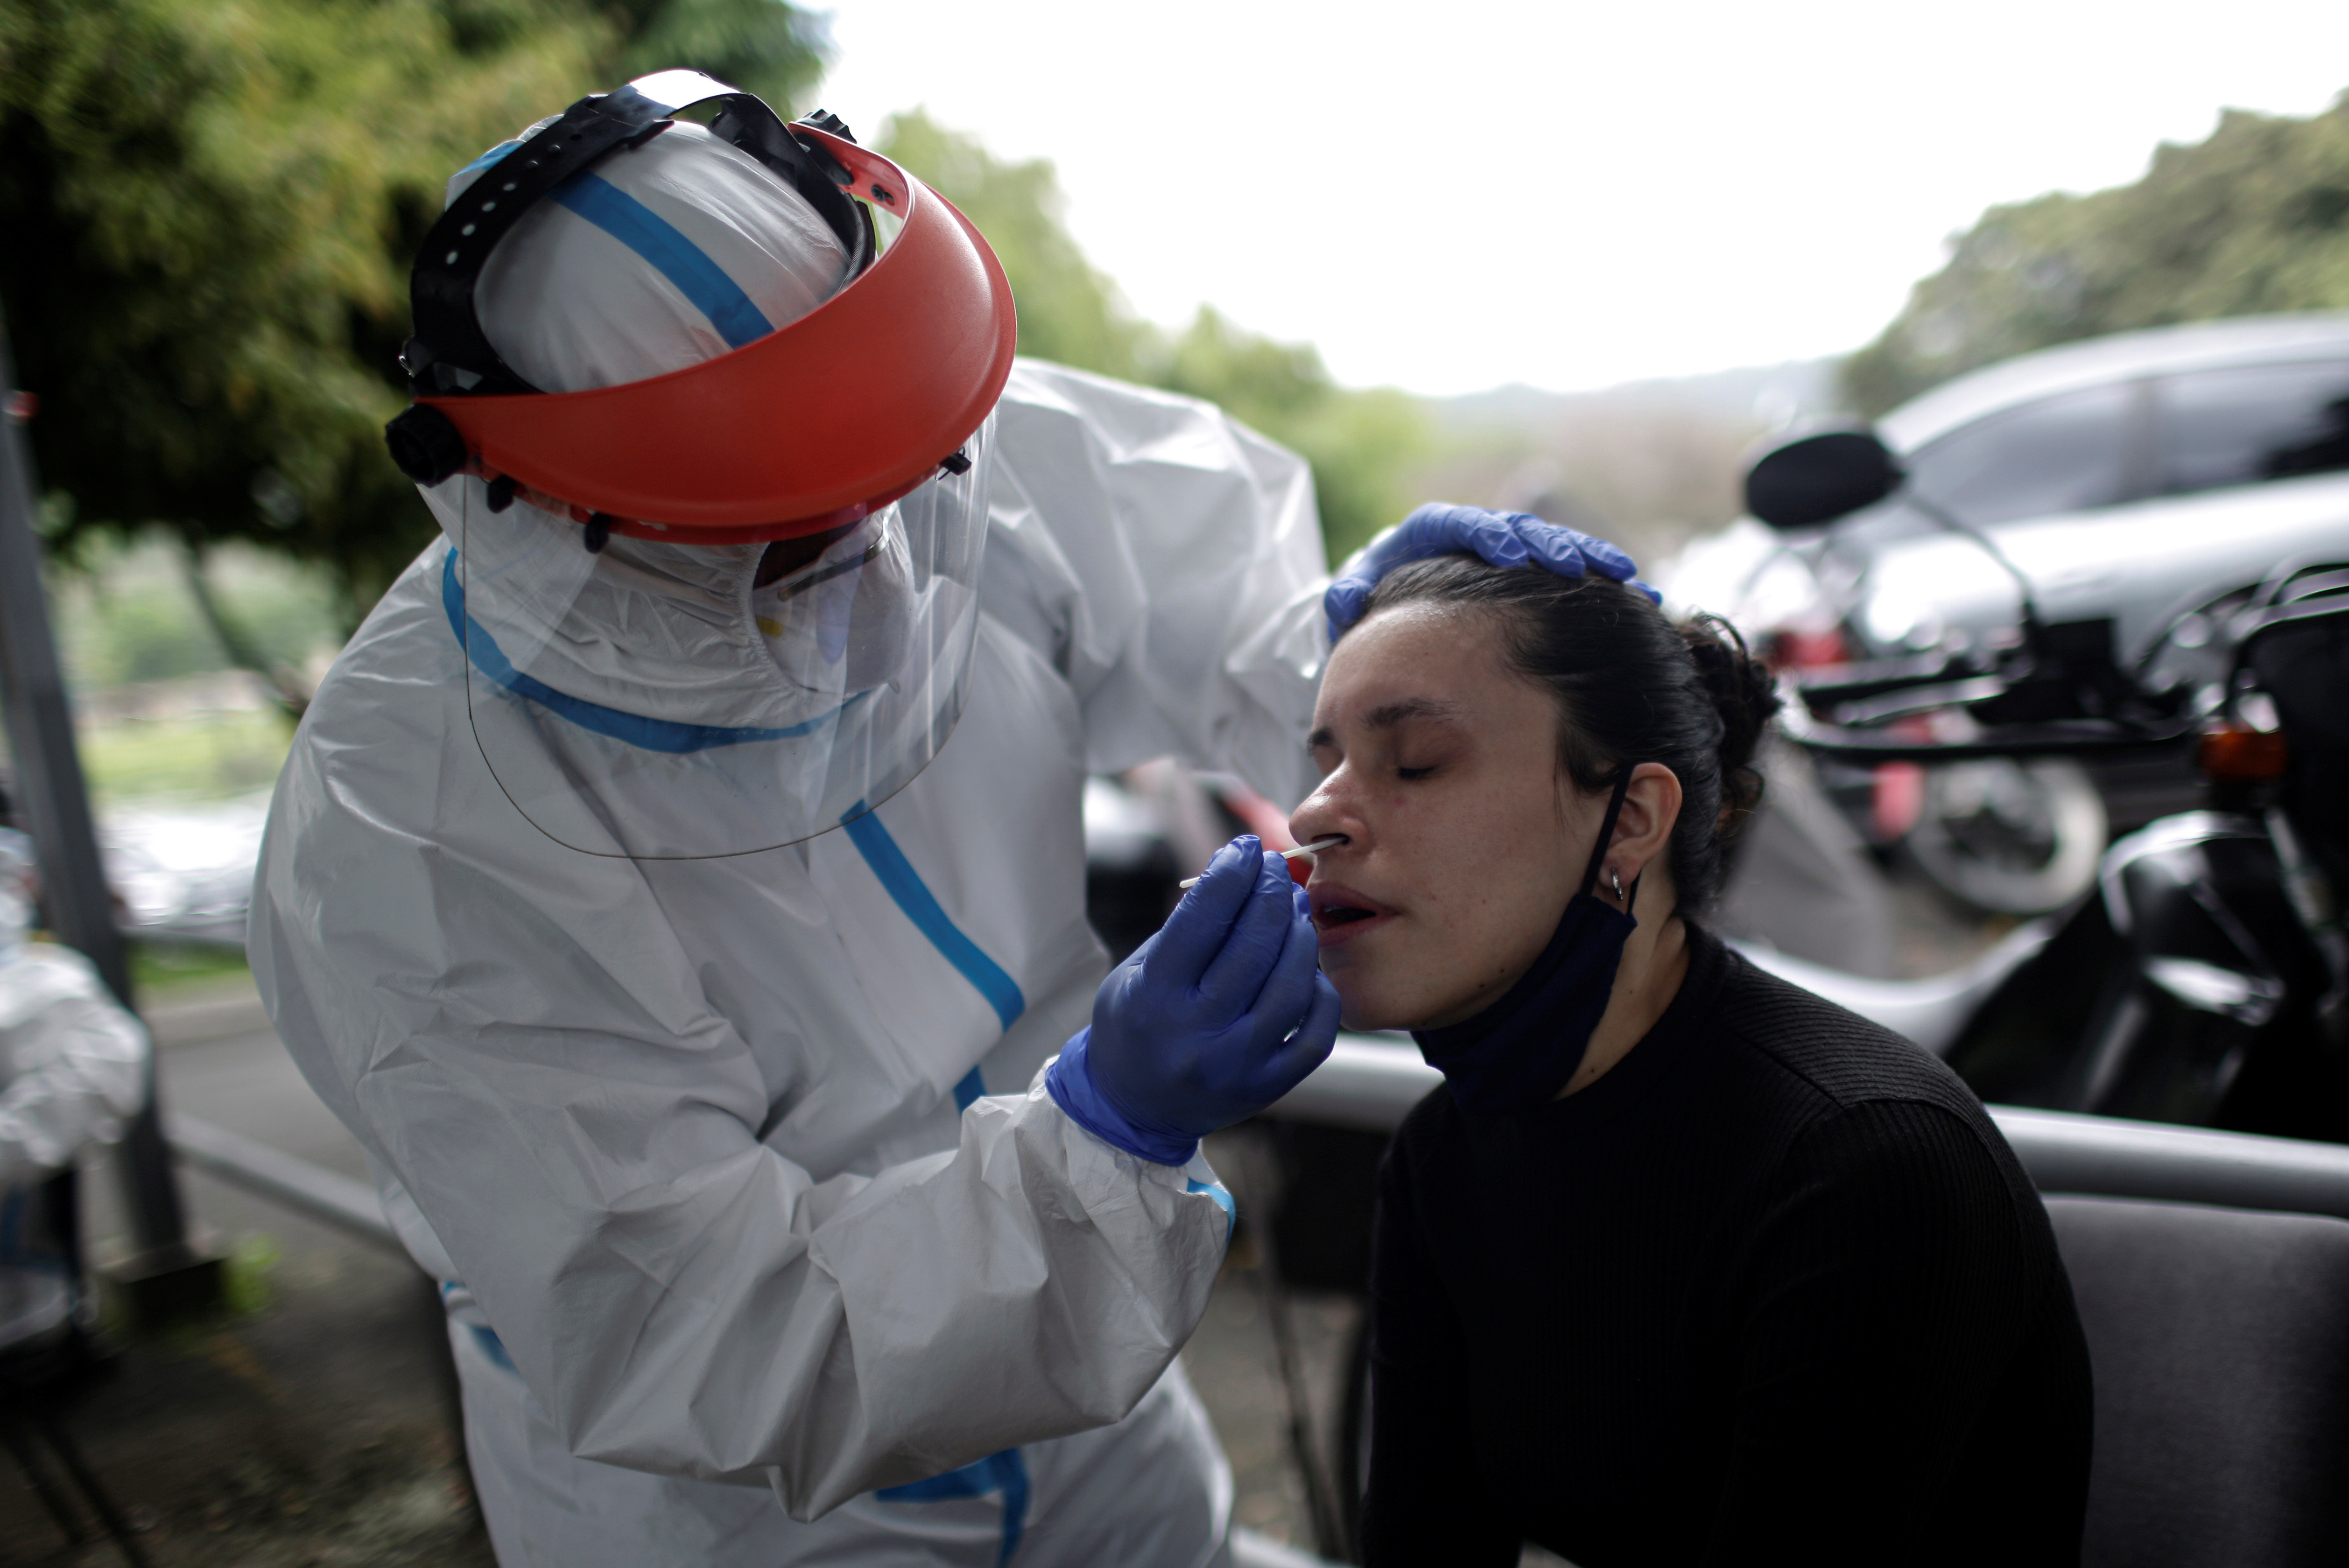 A healthcare worker takes a swab from a woman for the coronavirus disease (COVID-19) test, in a slum area in San Jose, Costa Rica July 7, 2020. REUTERS/Juan Carlos Ulate - RC2LOH9A3B74